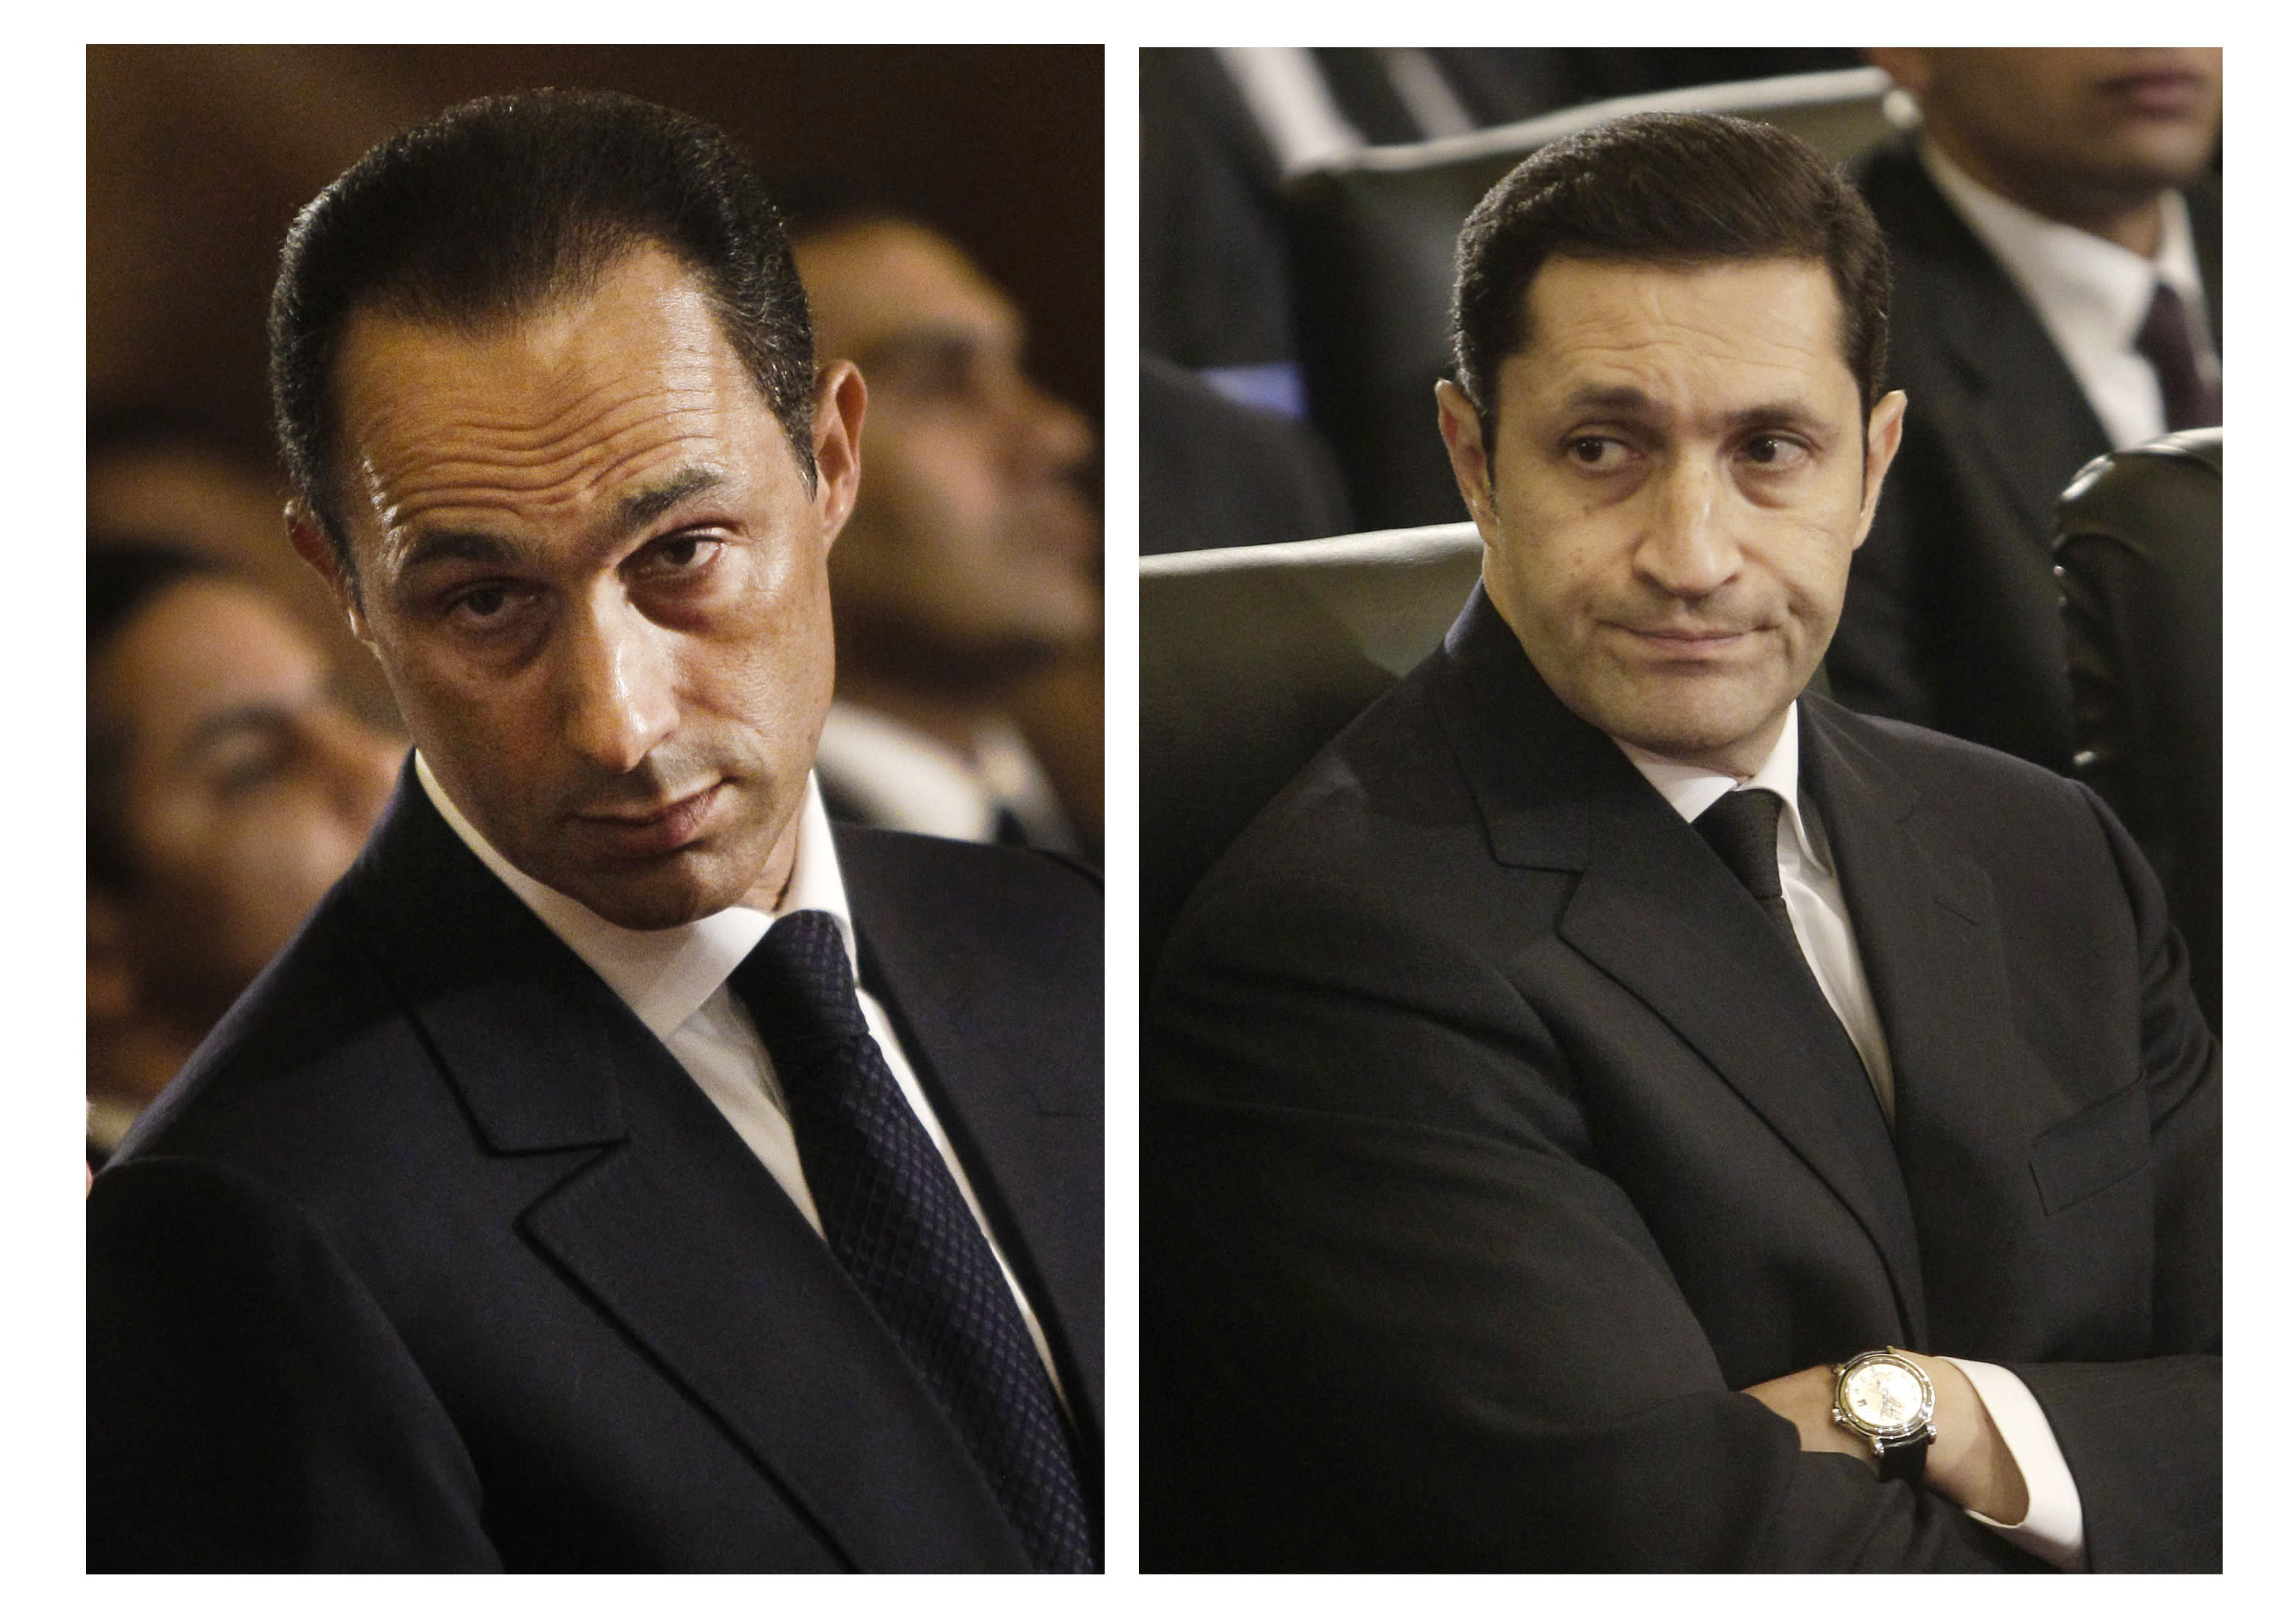 FILE - This combination of Jan. 6, 2011 file images shows Gamal Mubarak, left, and Alaa Mubarak, right, attending a Christmas Eve Mass at the Coptic cathedral in Cairo, Egypt. An Egyptian court on Thursday, Sept. 20, 2018 ordered the release from detention of former president Hosni Mubarak's two sons who are on trial on insider trading charges. (AP Photo/File)